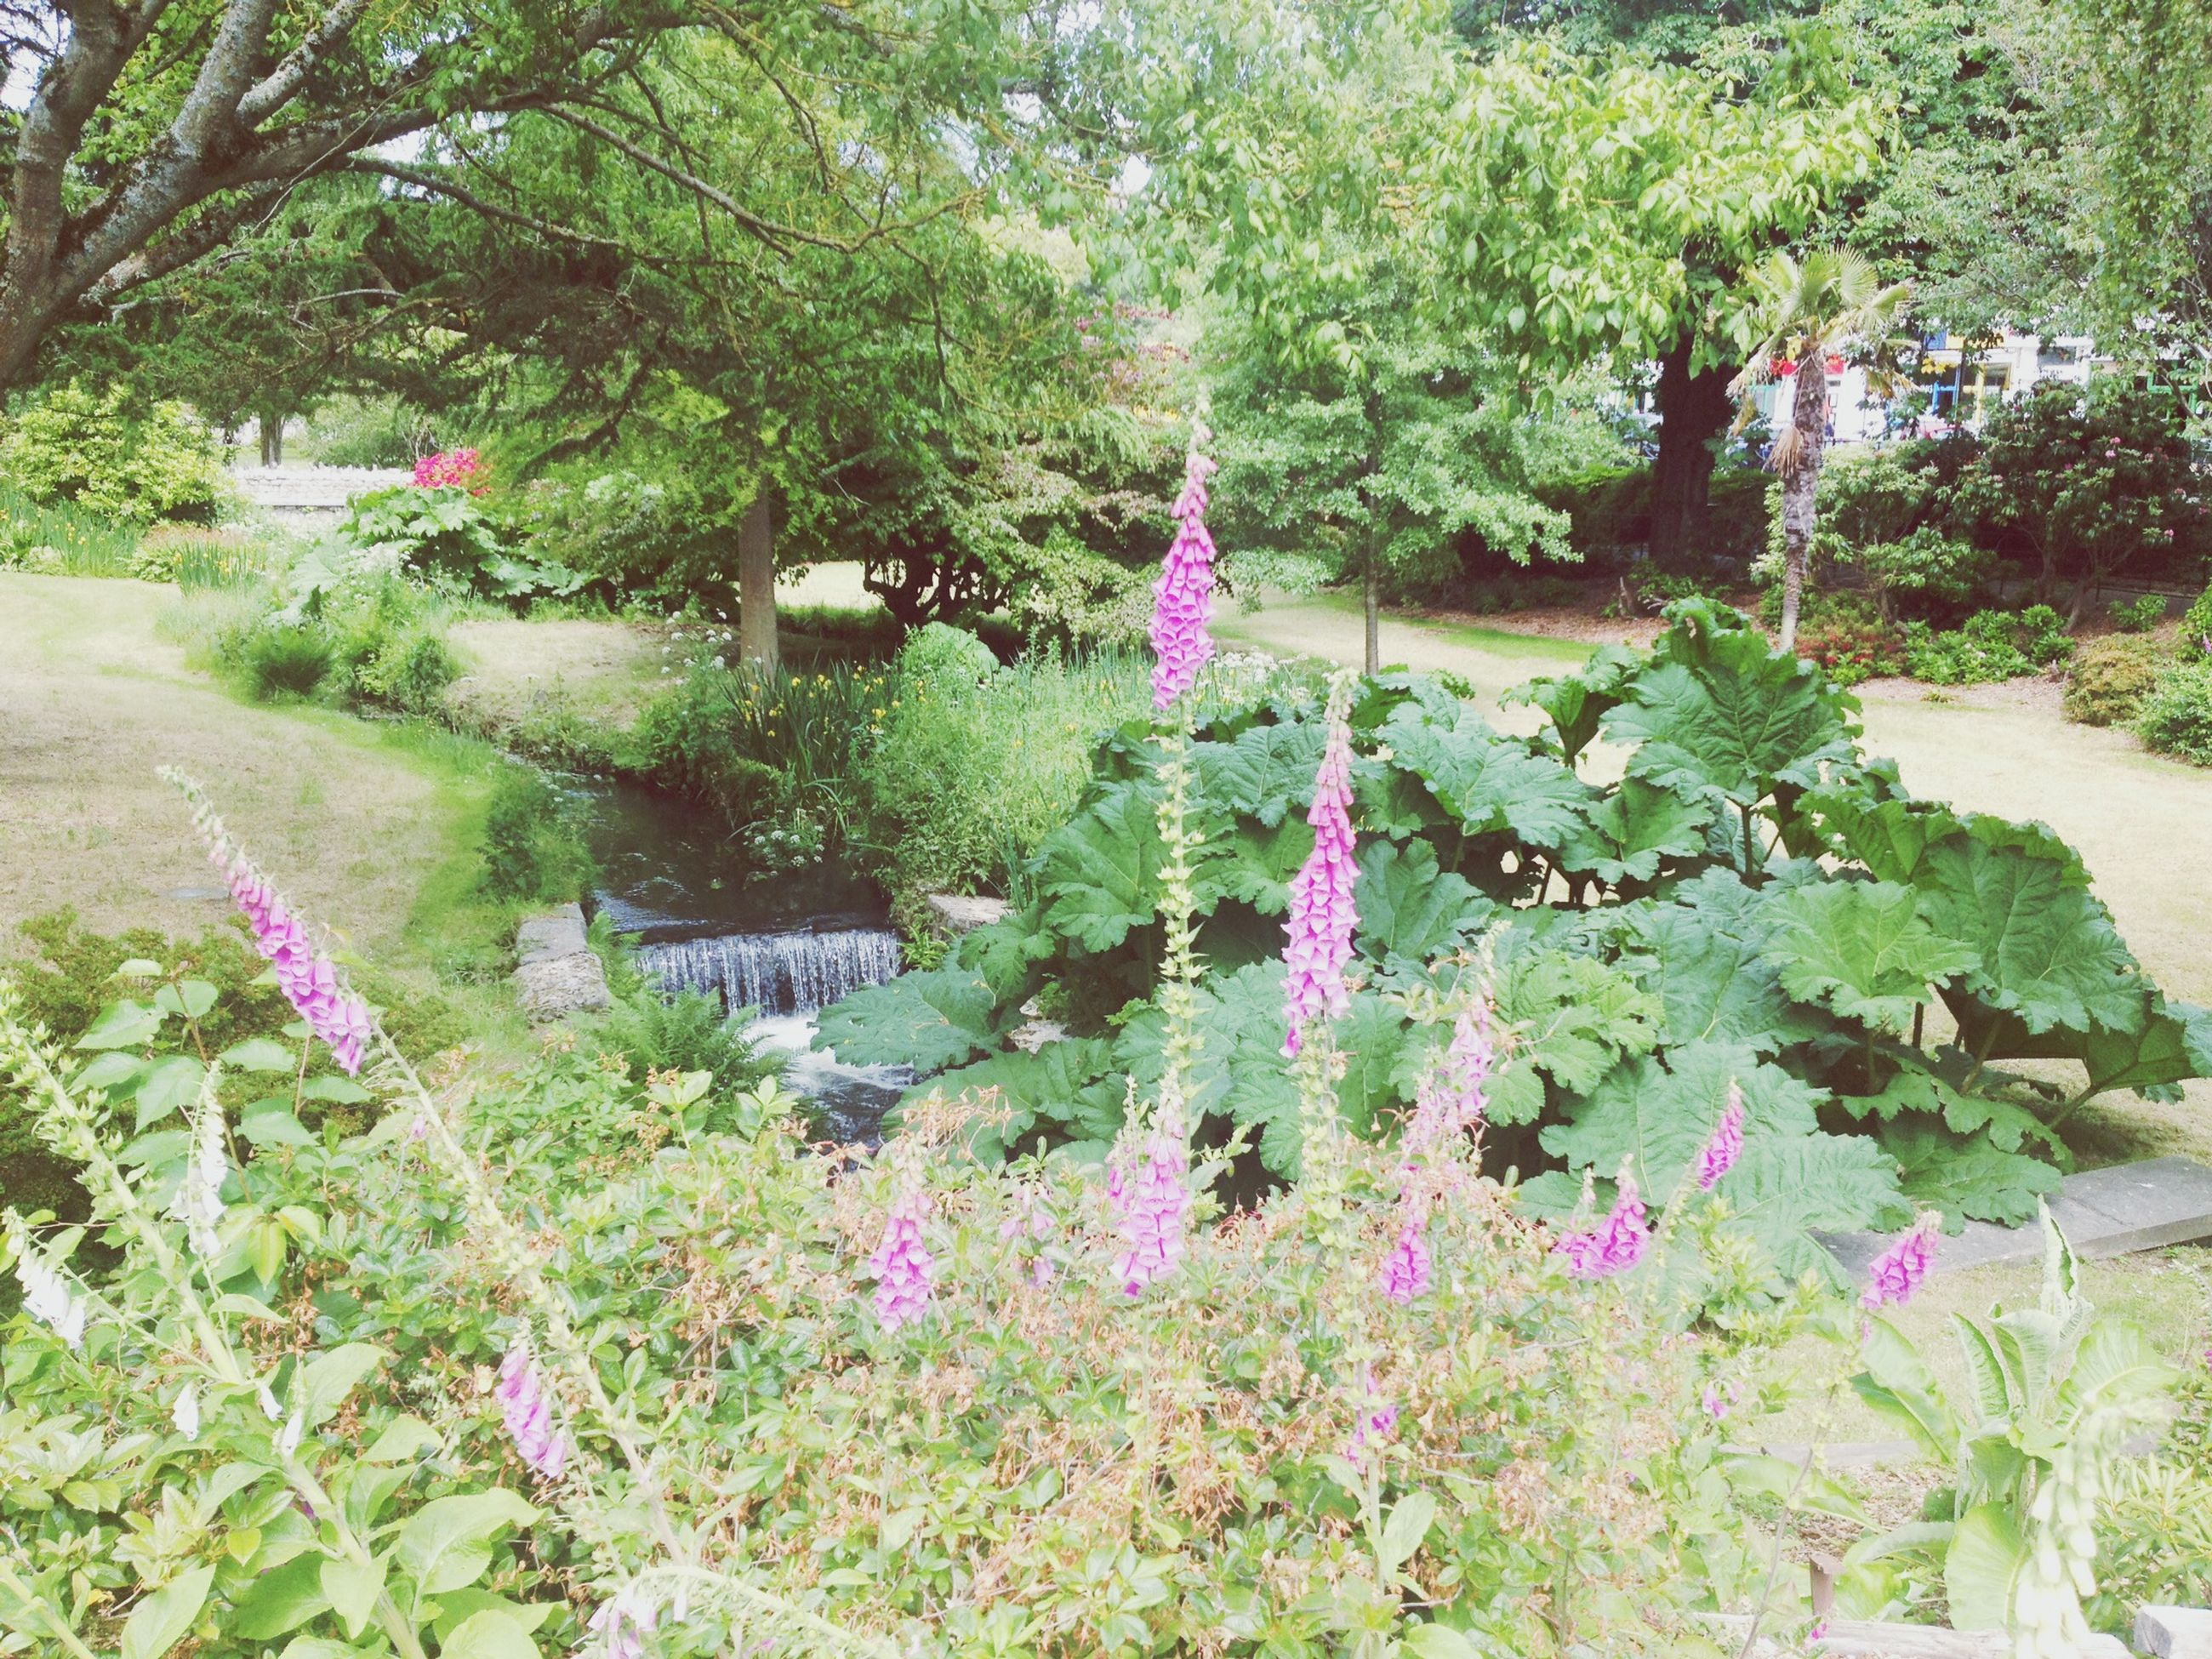 flower, growth, tree, plant, beauty in nature, freshness, nature, green color, purple, park - man made space, pink color, fragility, tranquility, blooming, leaf, growing, day, in bloom, water, green